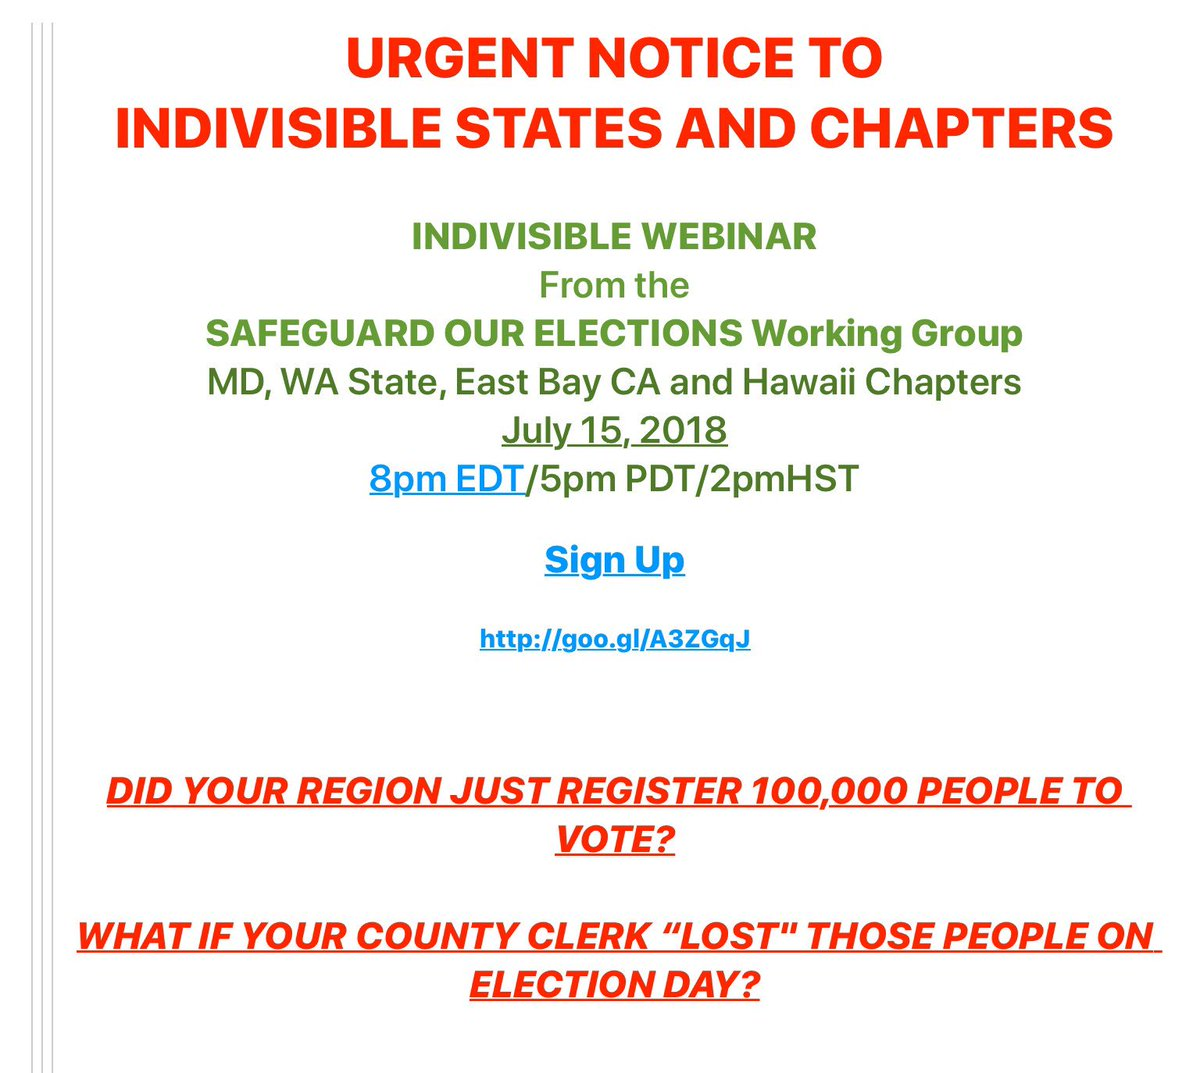 We&#39;re so excited to be working with #Indivisible chapters in MD, HI, &amp; WA to bring you this event on Sunday —the webinar is just the beginning. We want to work w/at least one chapter in every state to FIX THIS so please stick around — near the end we&#39;ll start rolling out ACTIONS. <br>http://pic.twitter.com/1xdX2RLzth